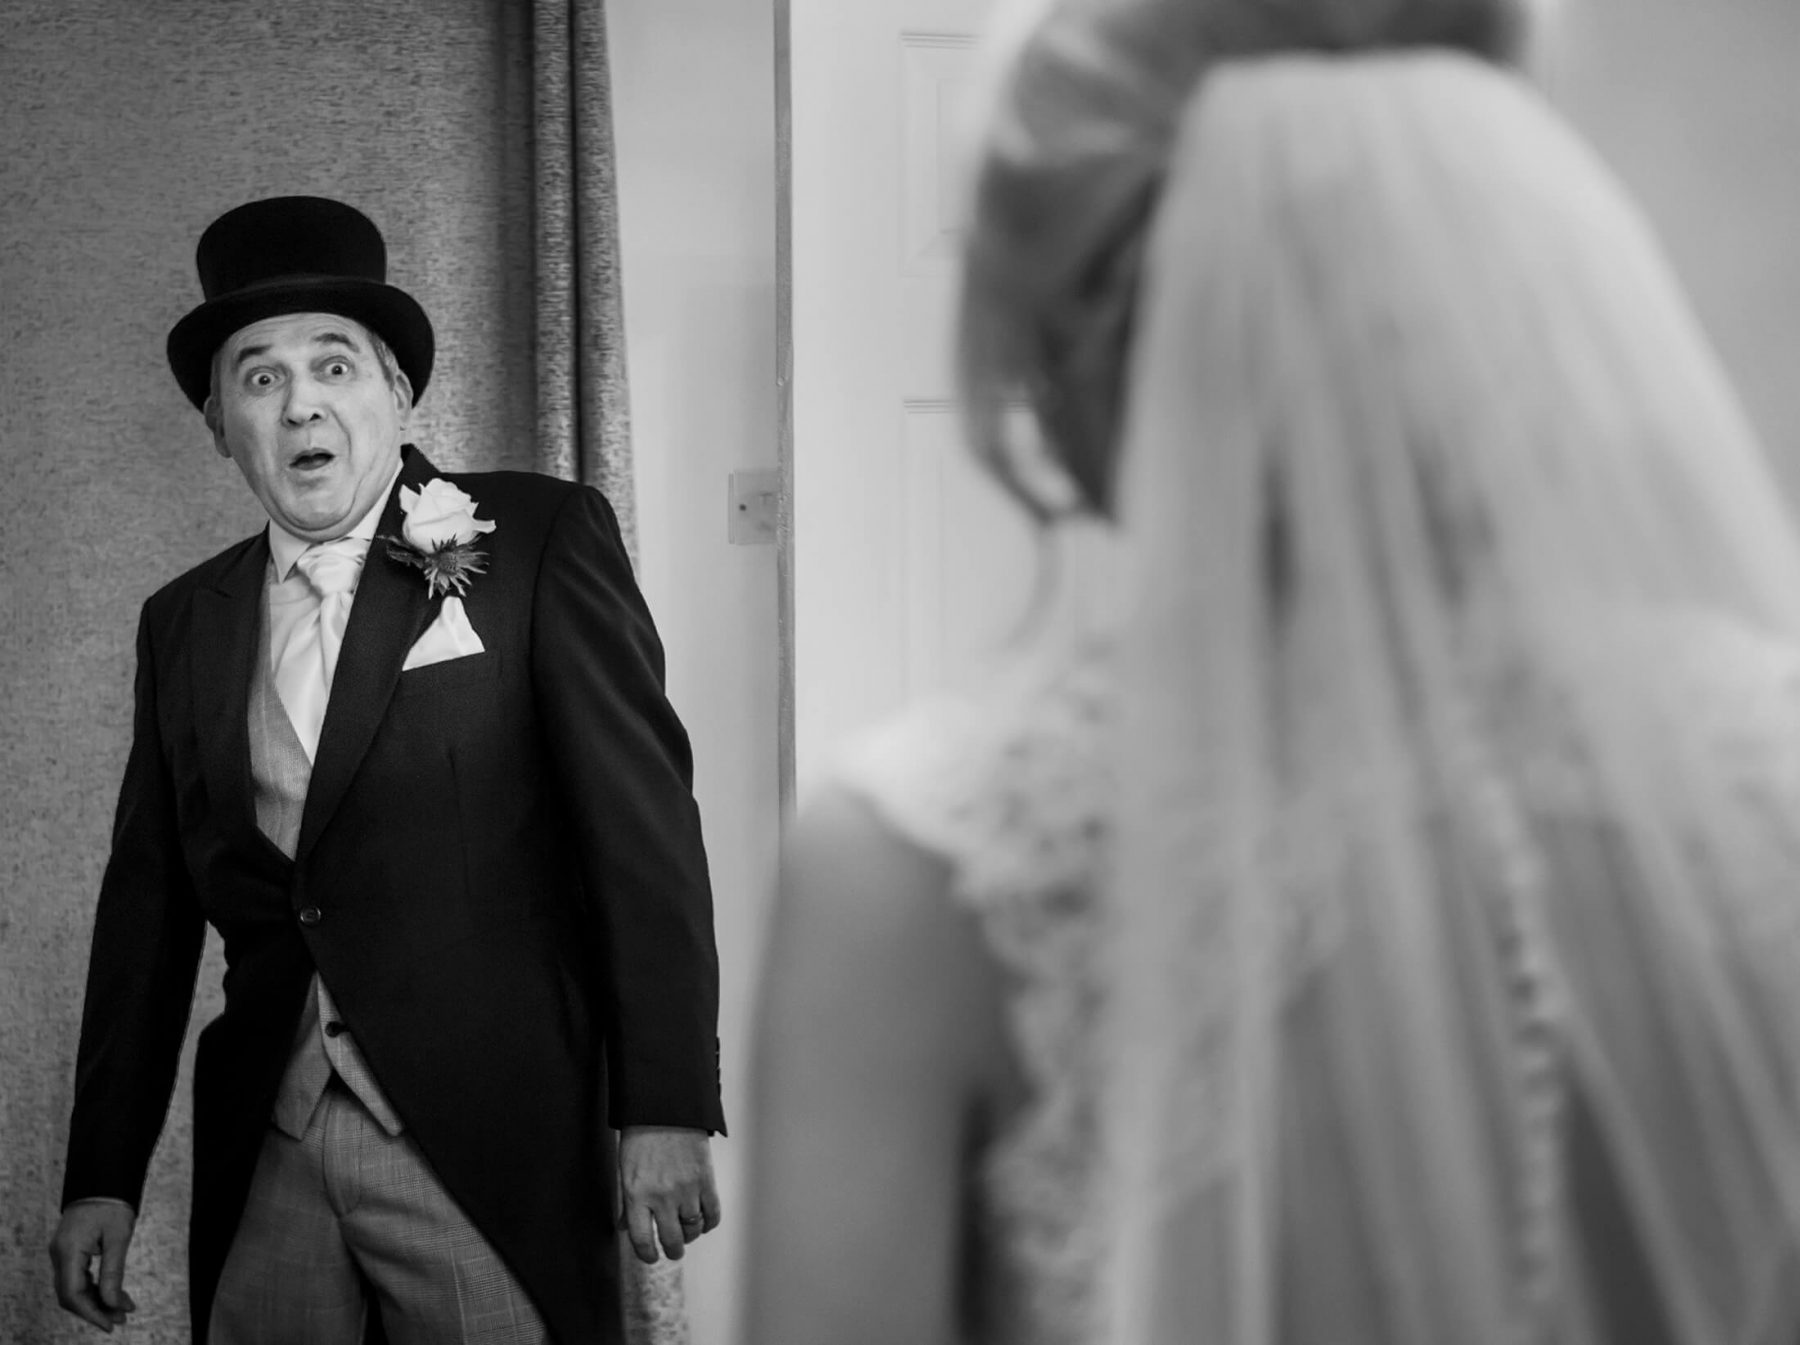 Relaxed wedding photography -The father of the bride looks surprised as he see his daughter in her wedding dress for the first time. Wychwood Park wedding photographer